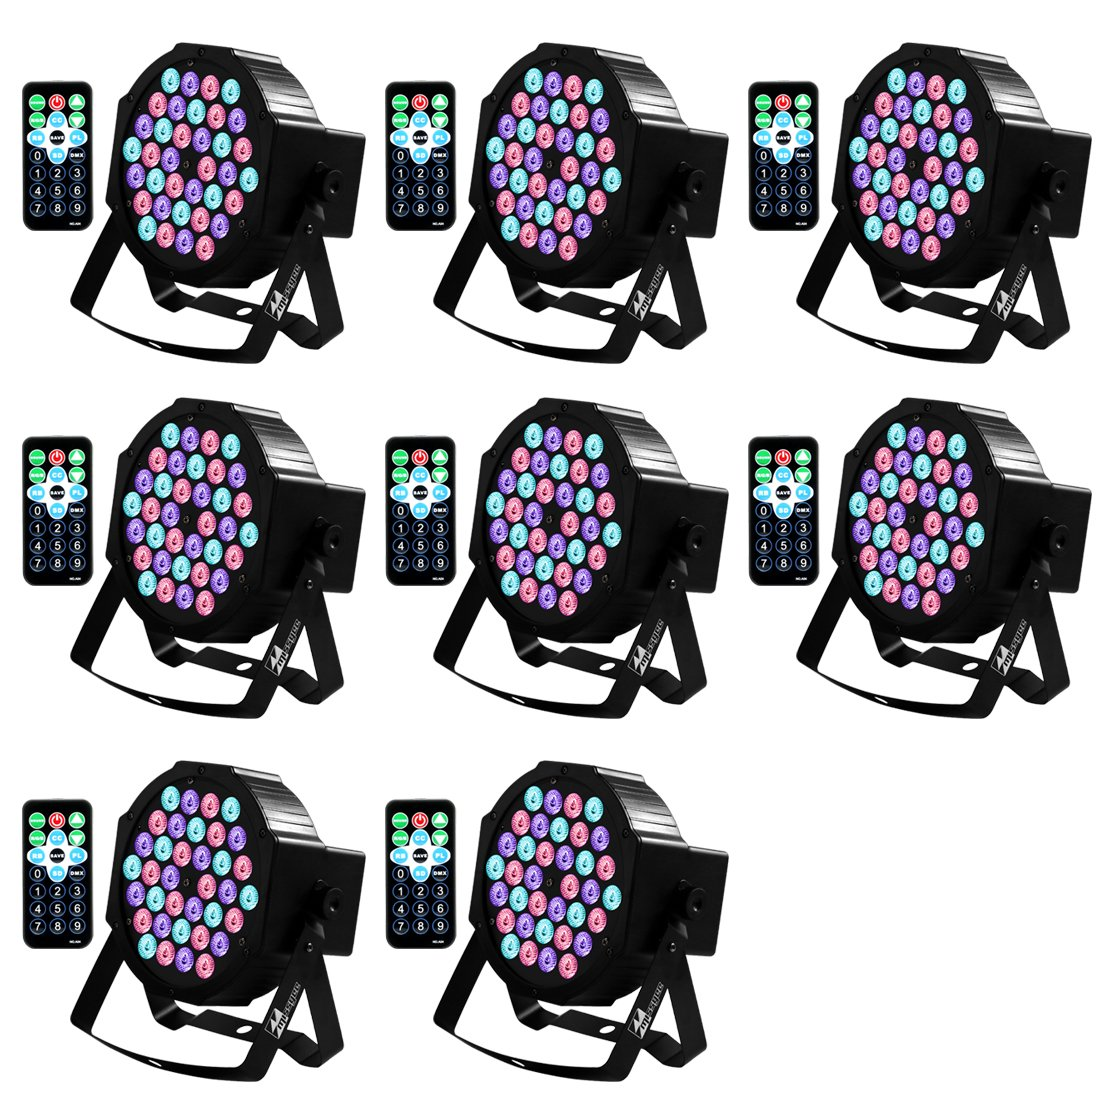 DJ Lights Missyee 36 X 1W RGB LEDs DJ LED Uplighting Package Sound Activated Stage Par Lights with Remote Control Compatible with DMX, 9 Modes LED Up Lights for Wedding Event Party Festival (8 Pack) by Missyee